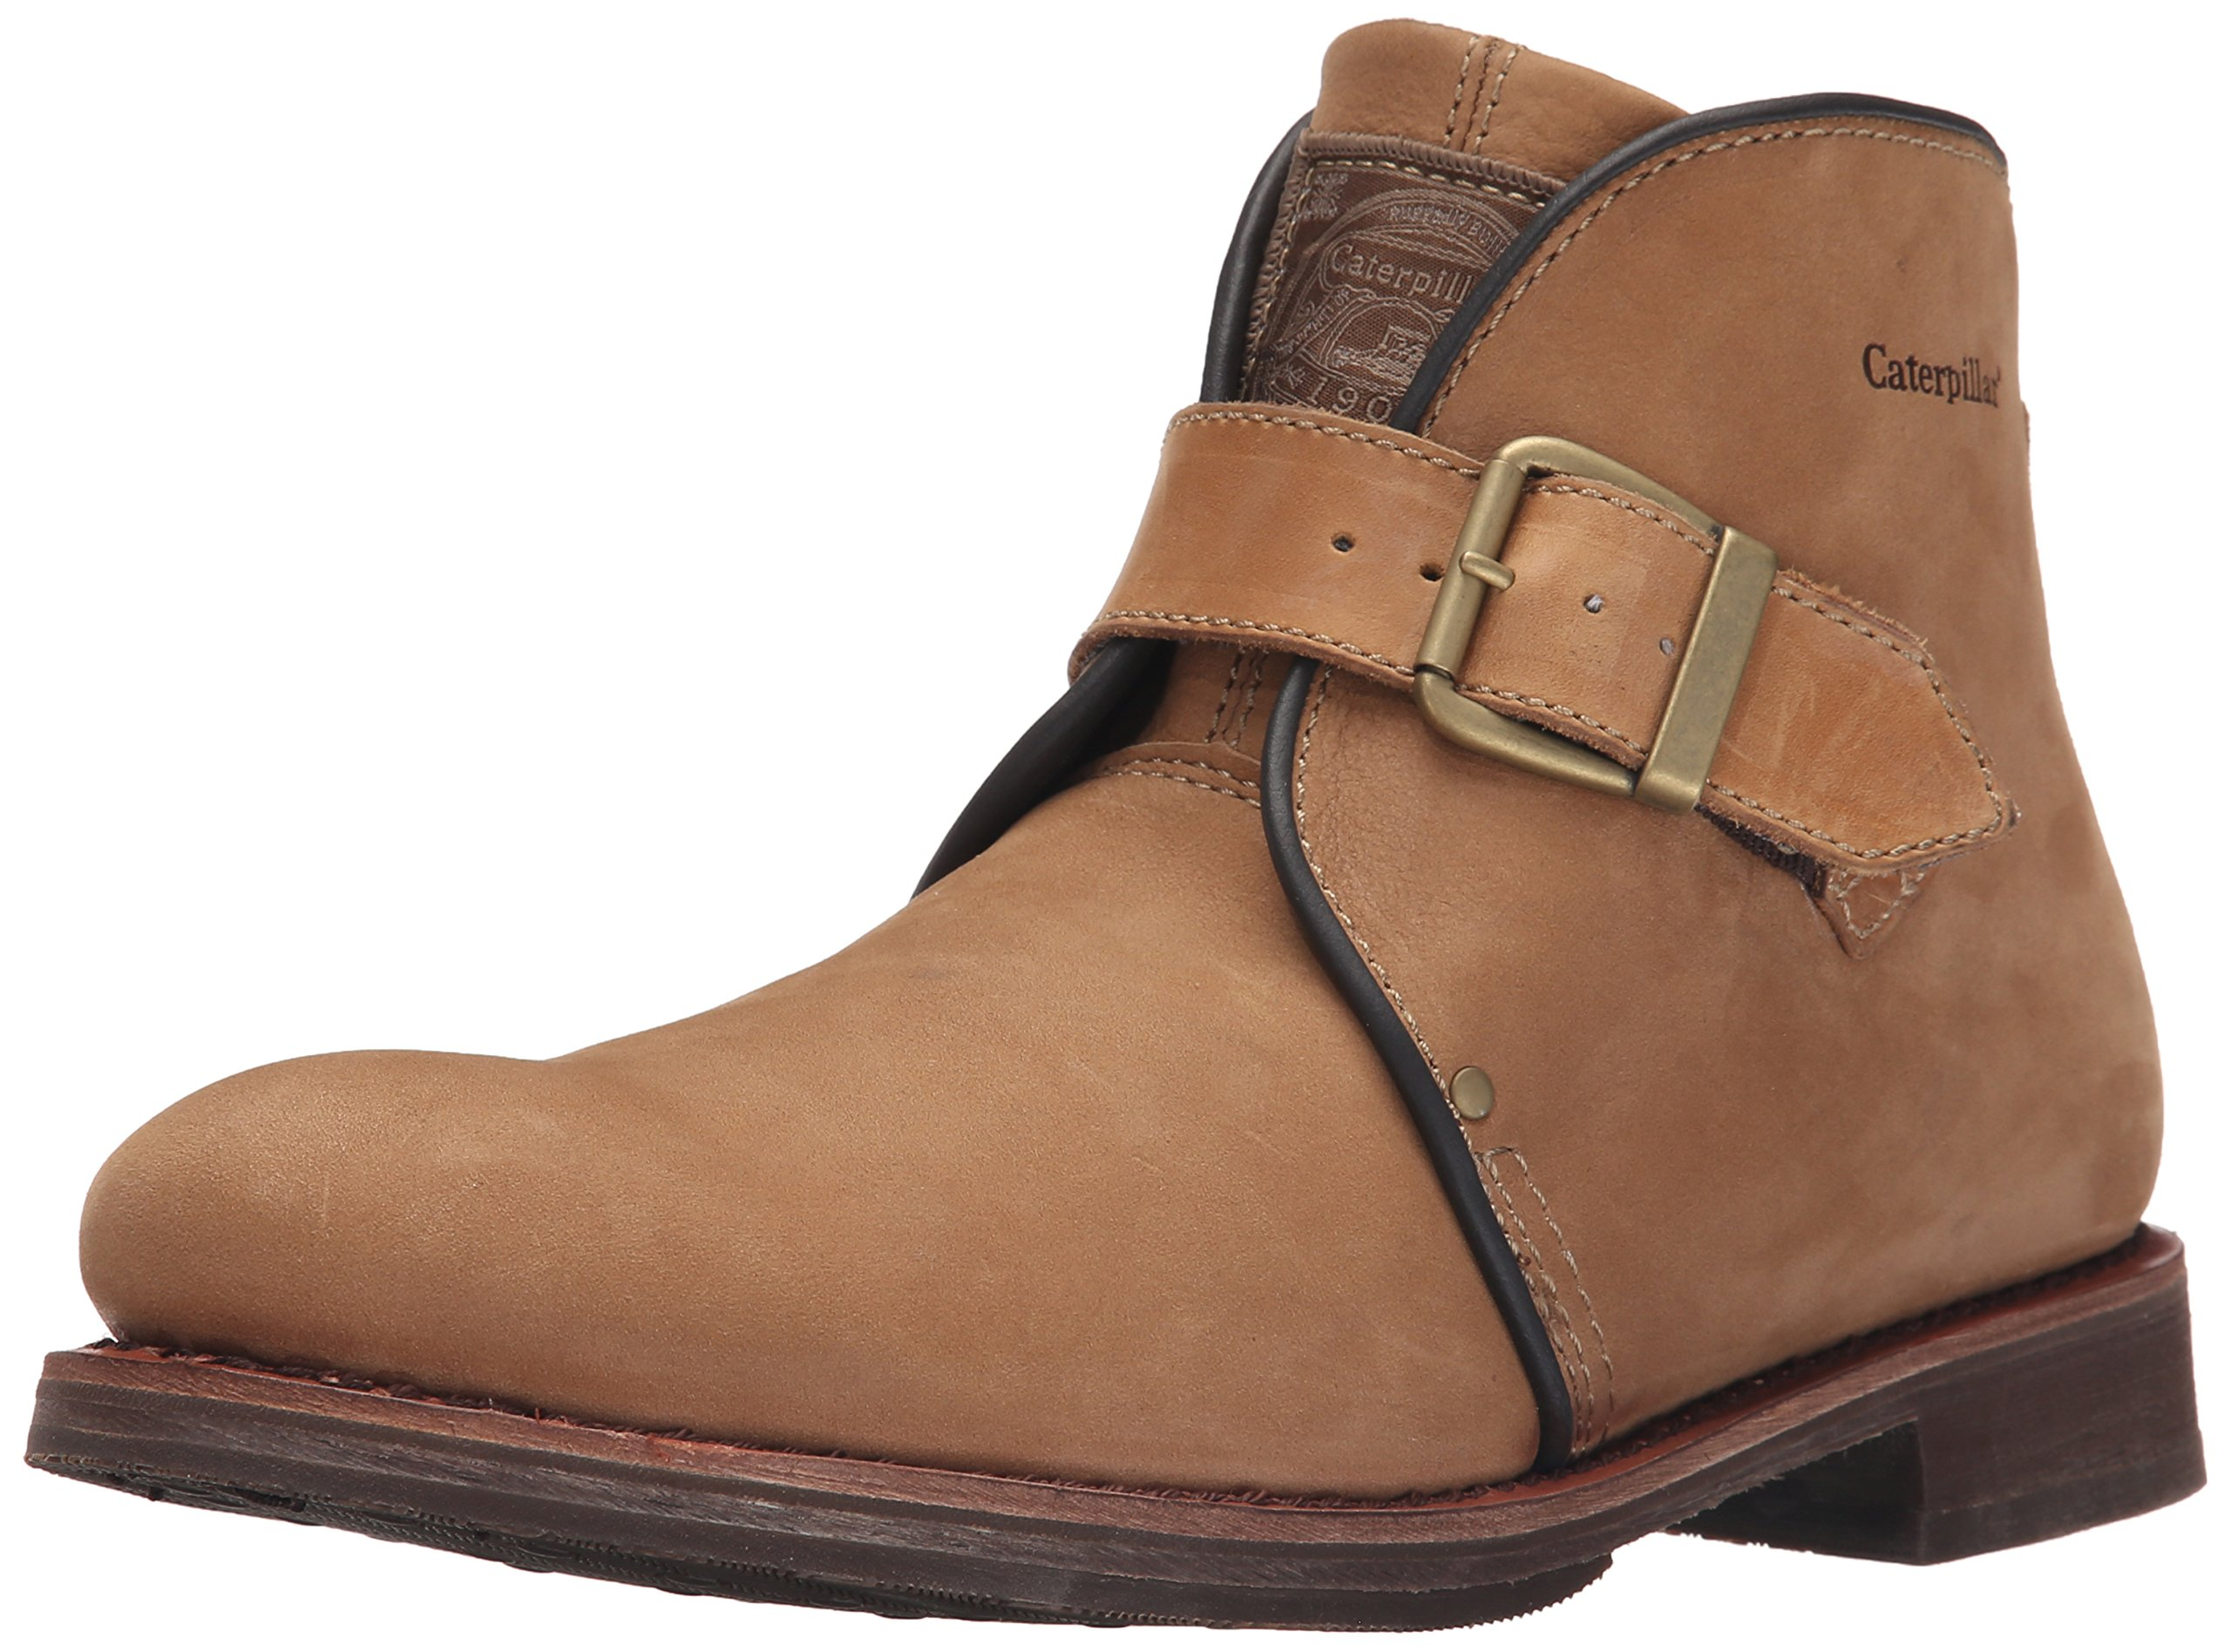 Caterpillar Men's Haverhill Chukka Boot, Sand, 11 M US